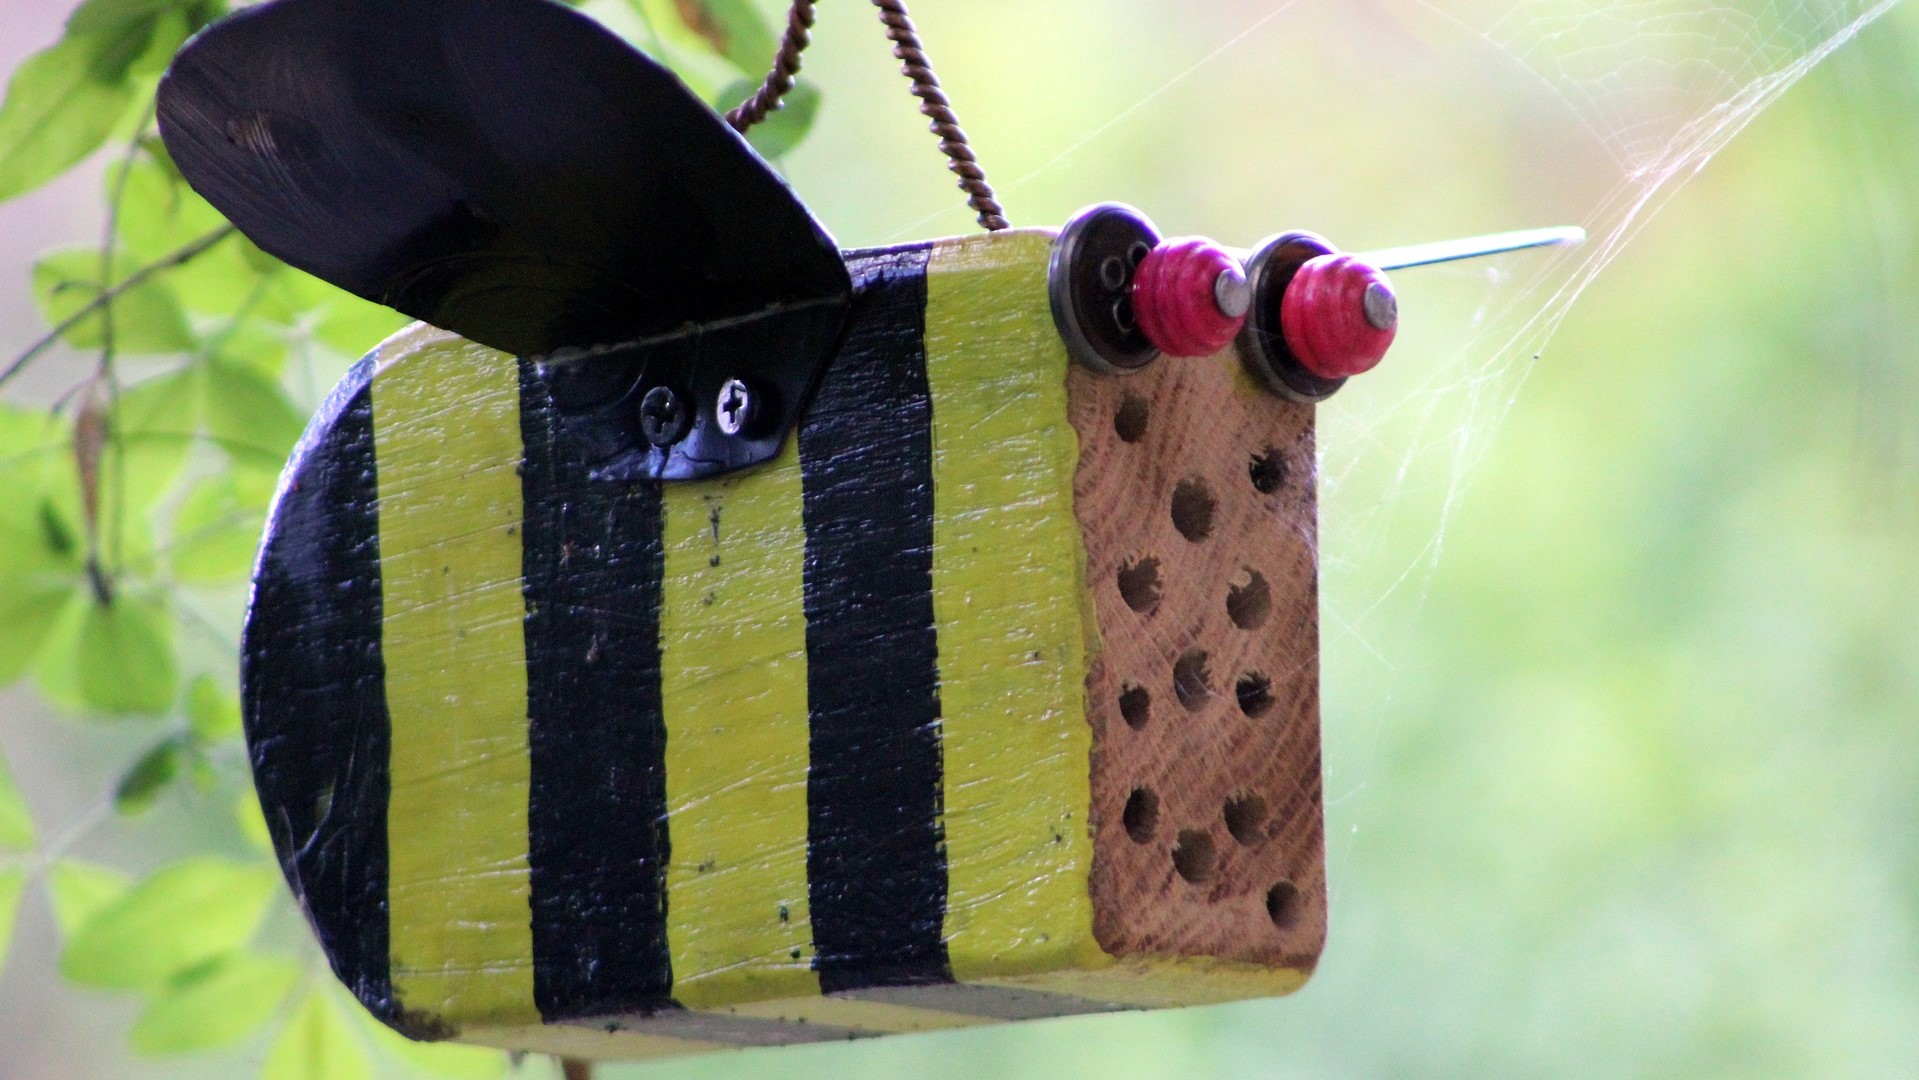 Attract Bees - Attract mason bees - mason bee nesting - Bee hotel 7